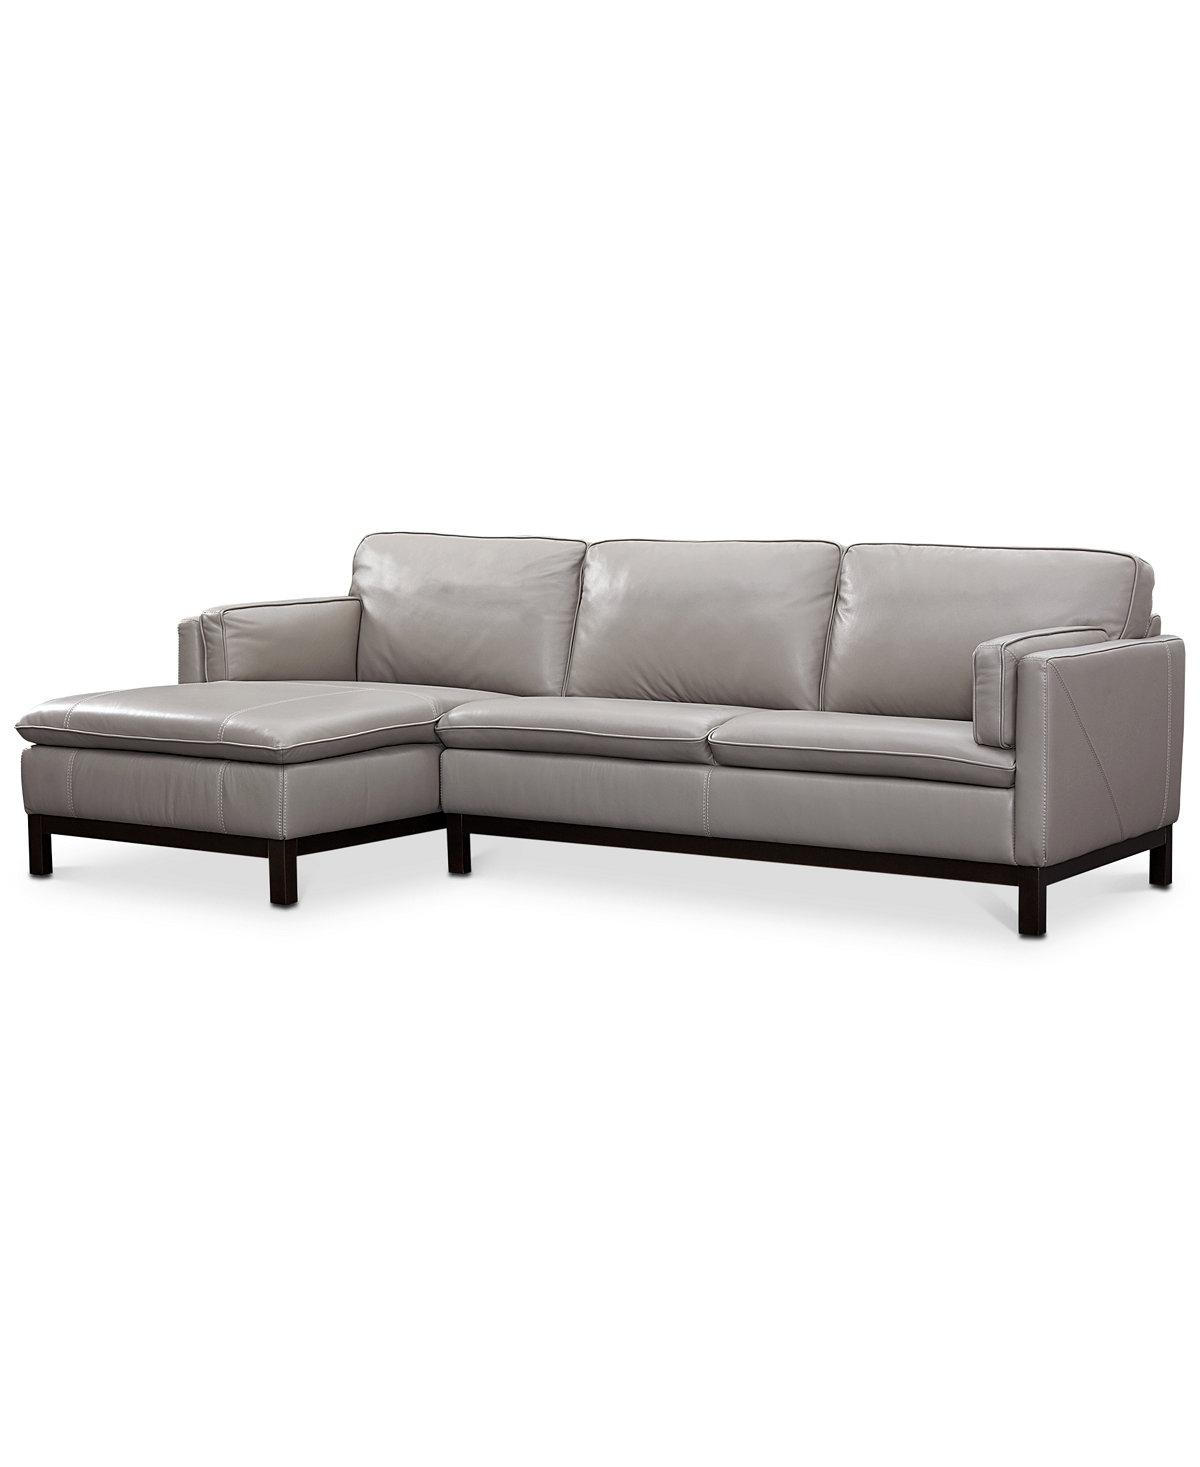 Preferred El Paso Tx Sectional Sofas Pertaining To Ventroso 2 Pc (View 9 of 20)